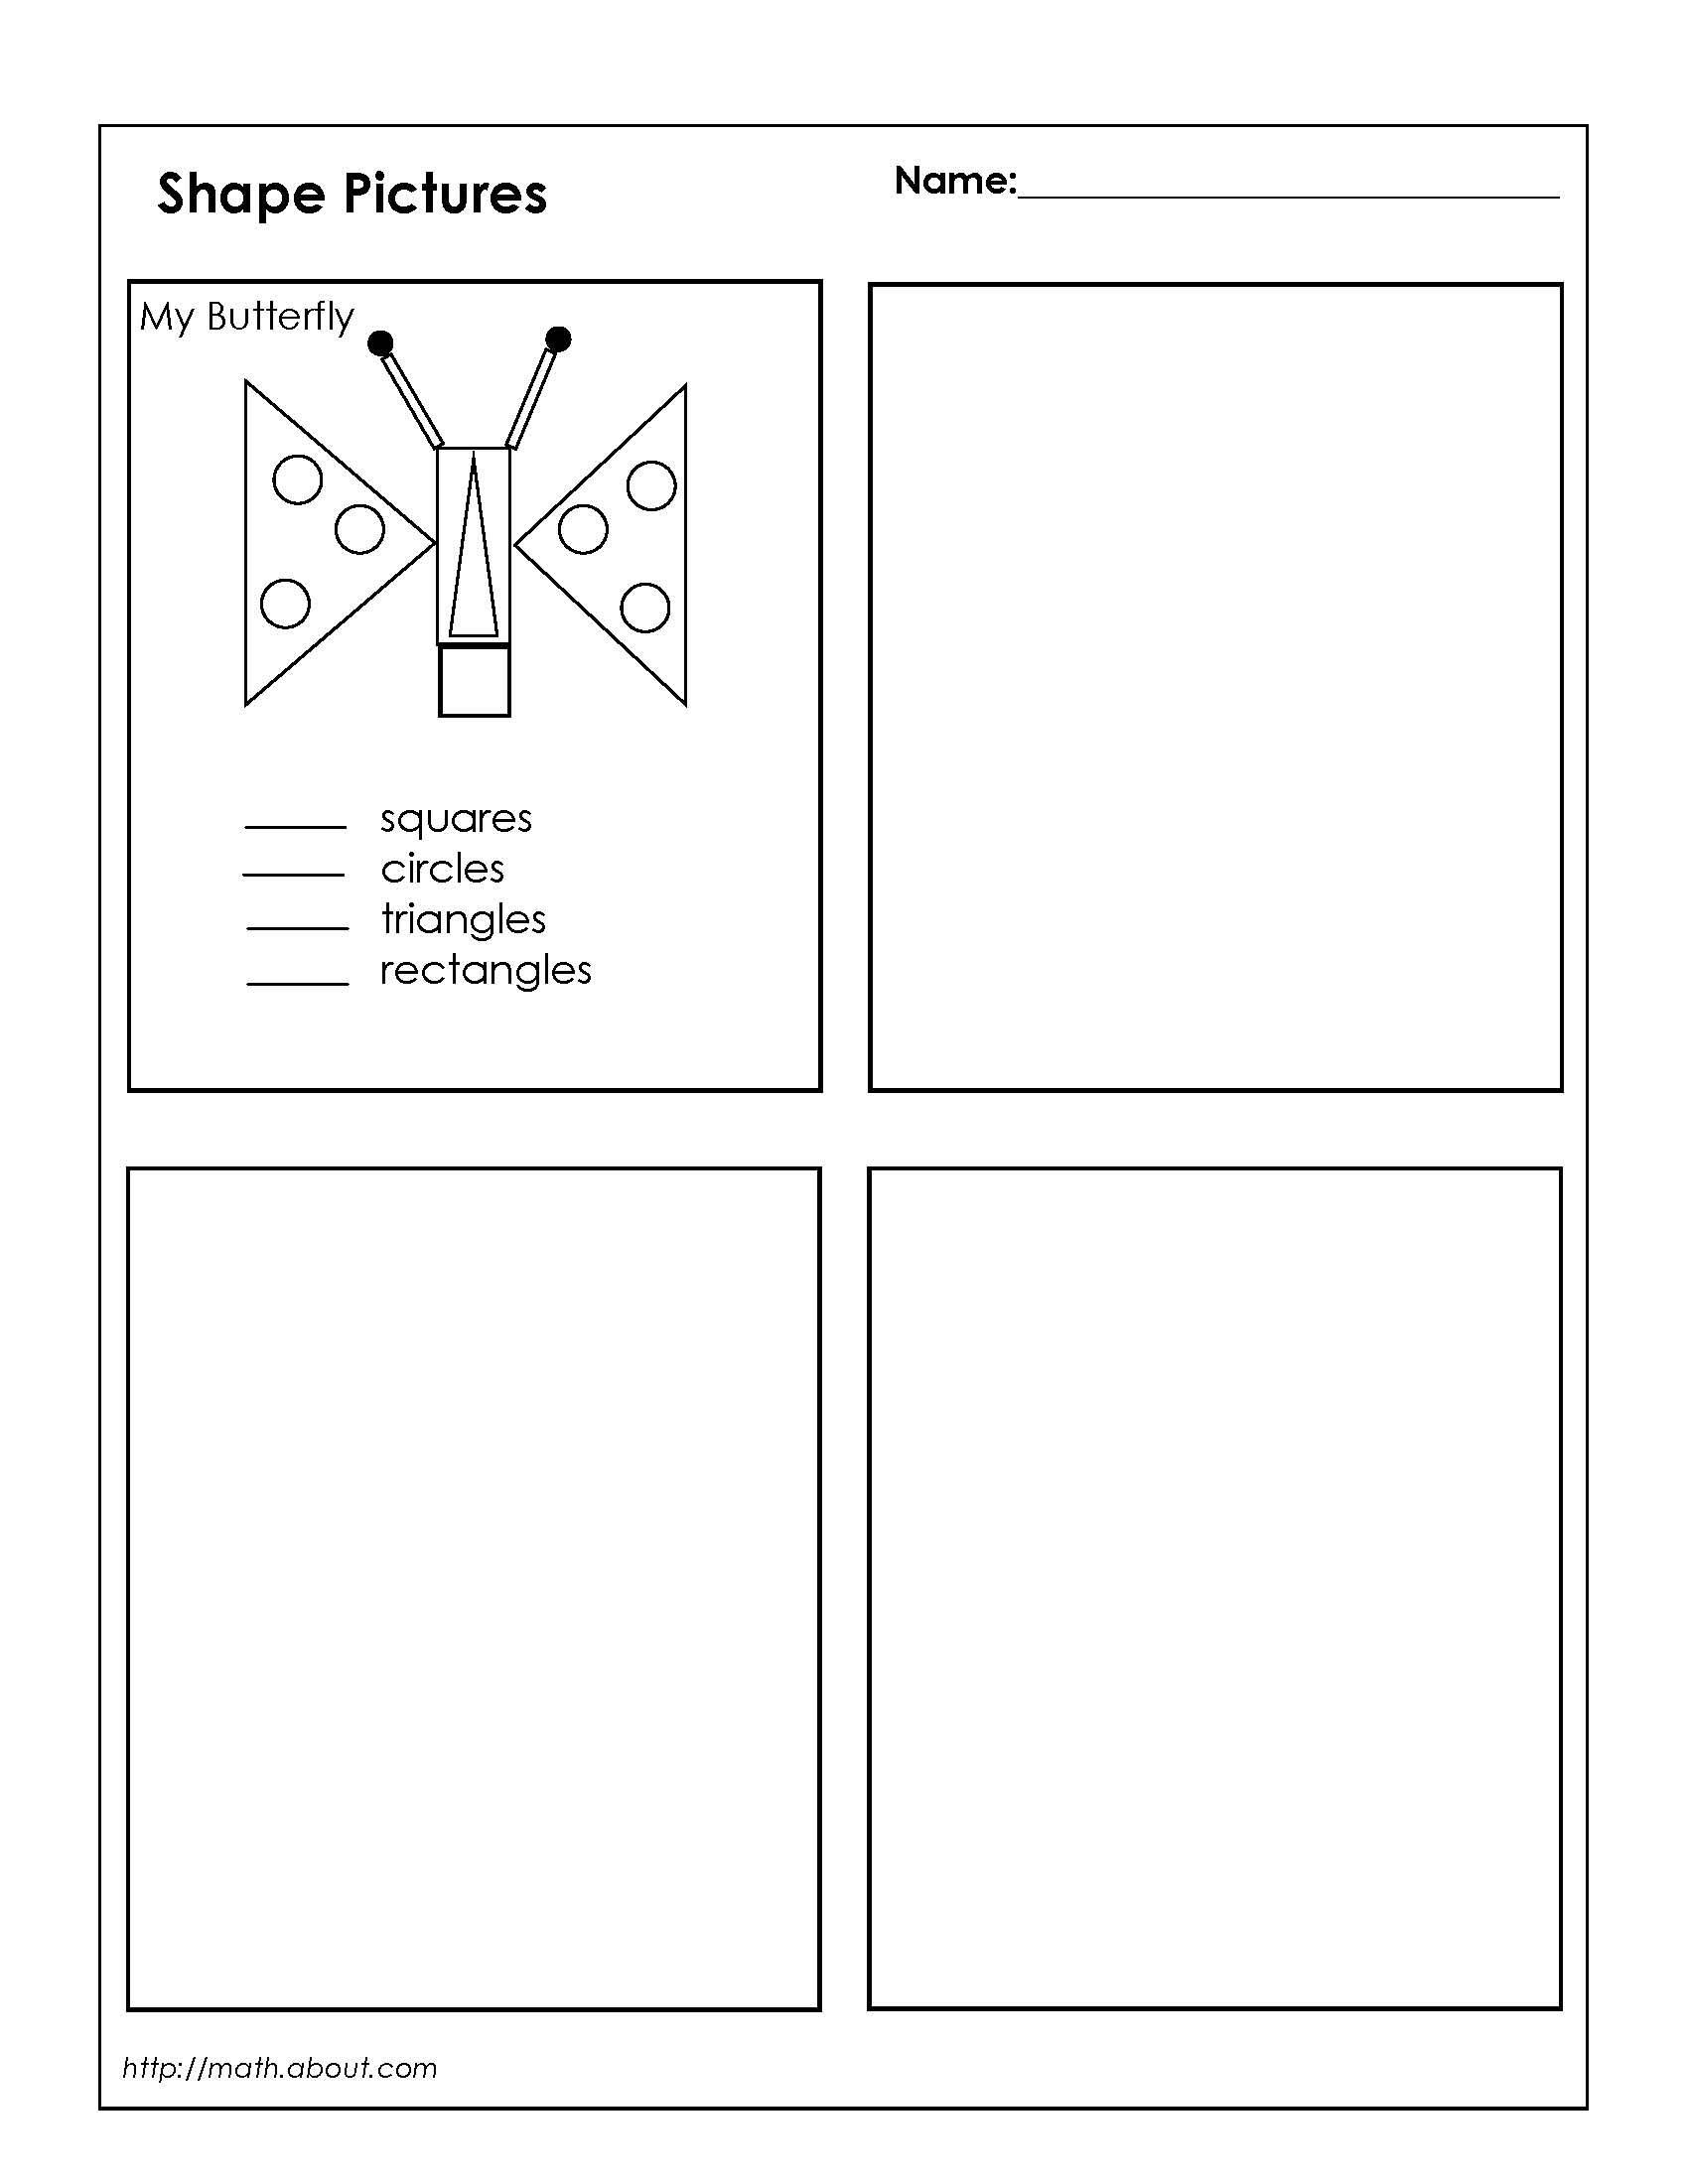 Animal Classification Worksheet